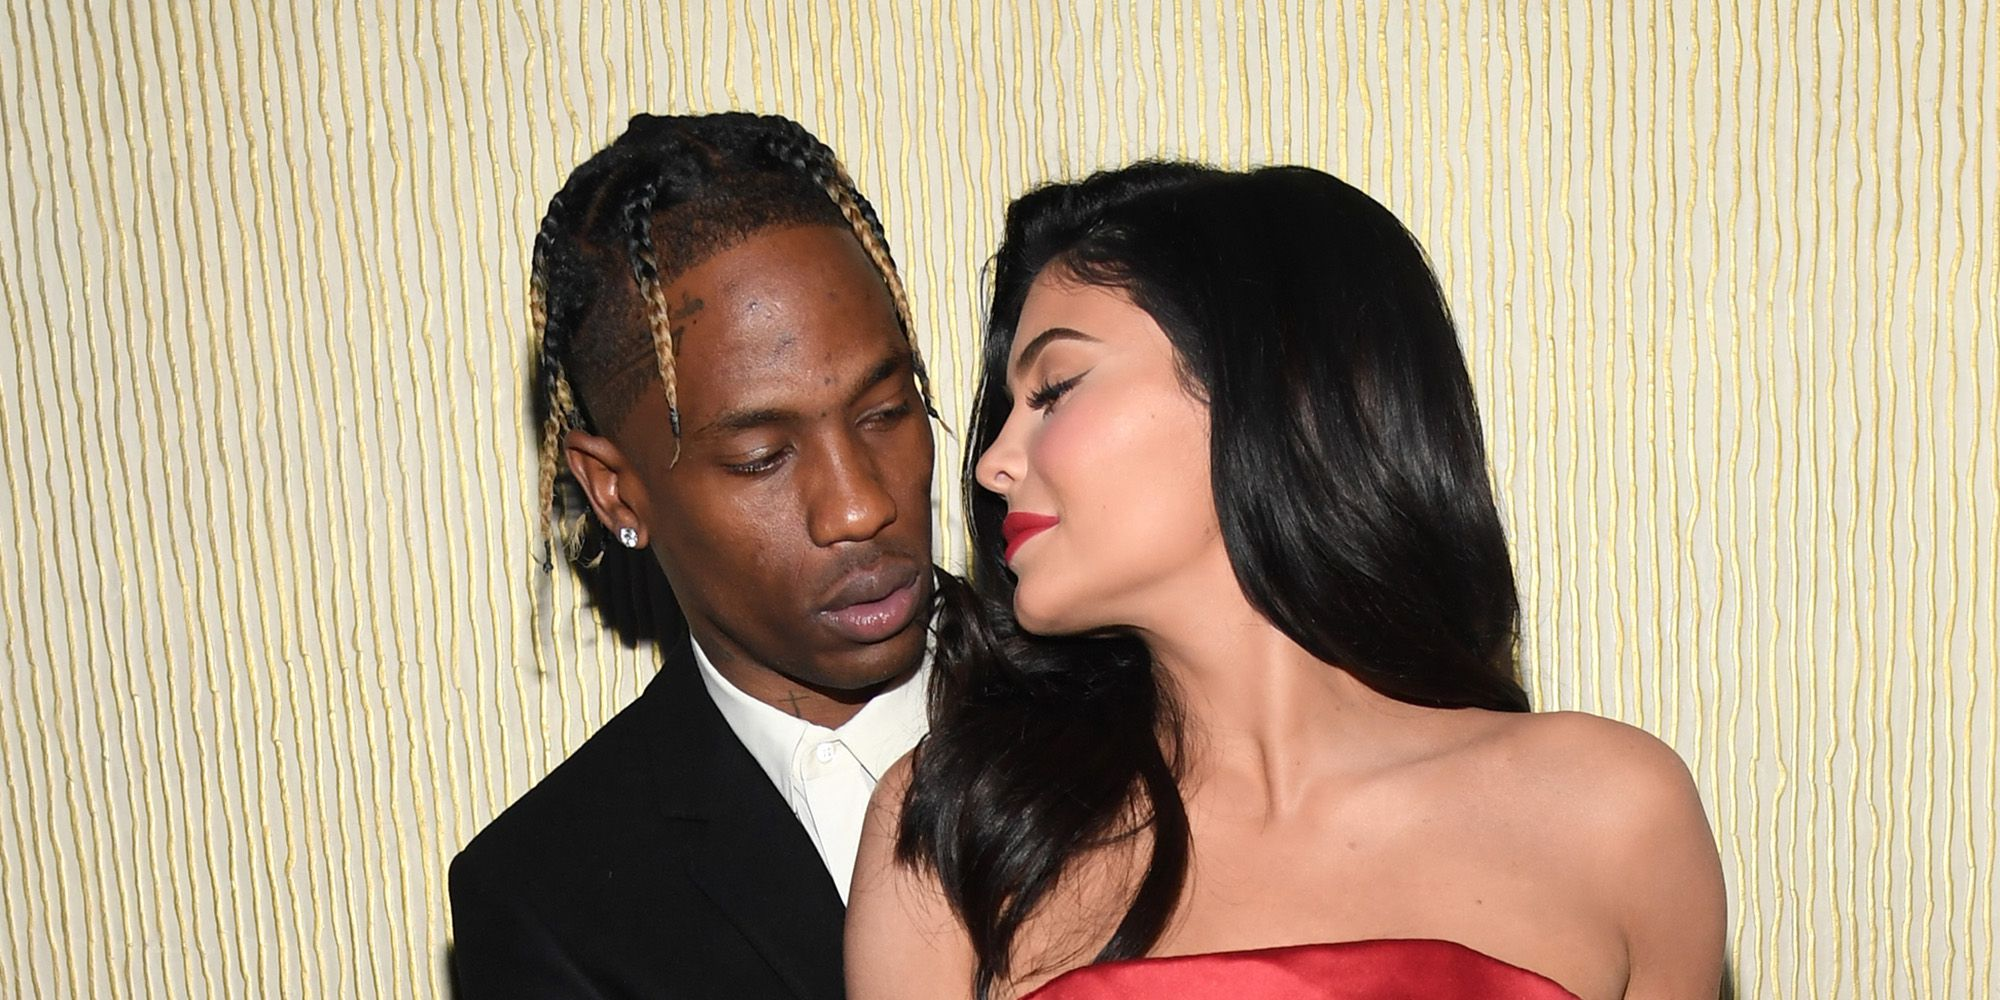 Kylie Jenner And Travis Scott Pack On The PDA At Kanye West's Sunday Service At Coachella